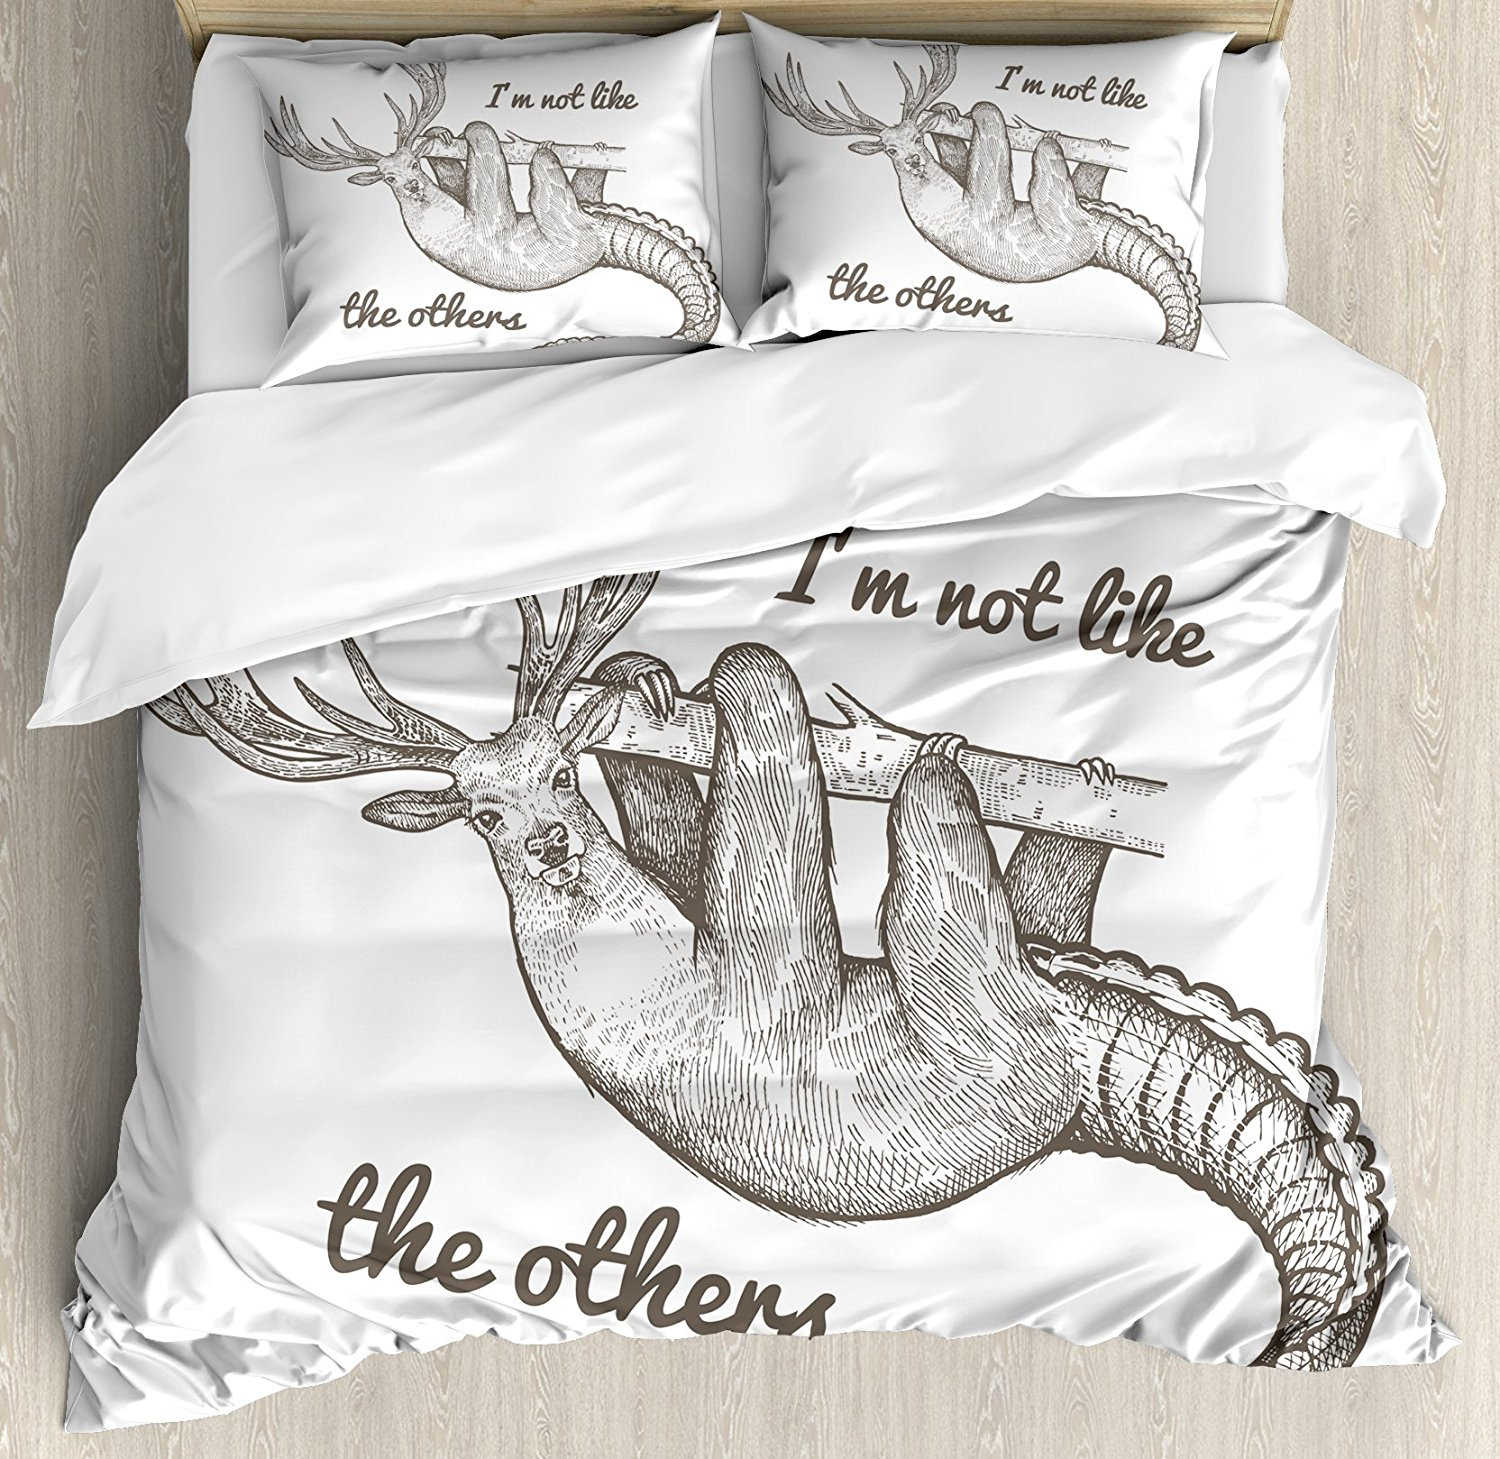 Sloth Duvet Cover Set Unusual Fantastic Animal Quote Im Not Like The Others Inspirational Vintage Bedding Set Grey Black White